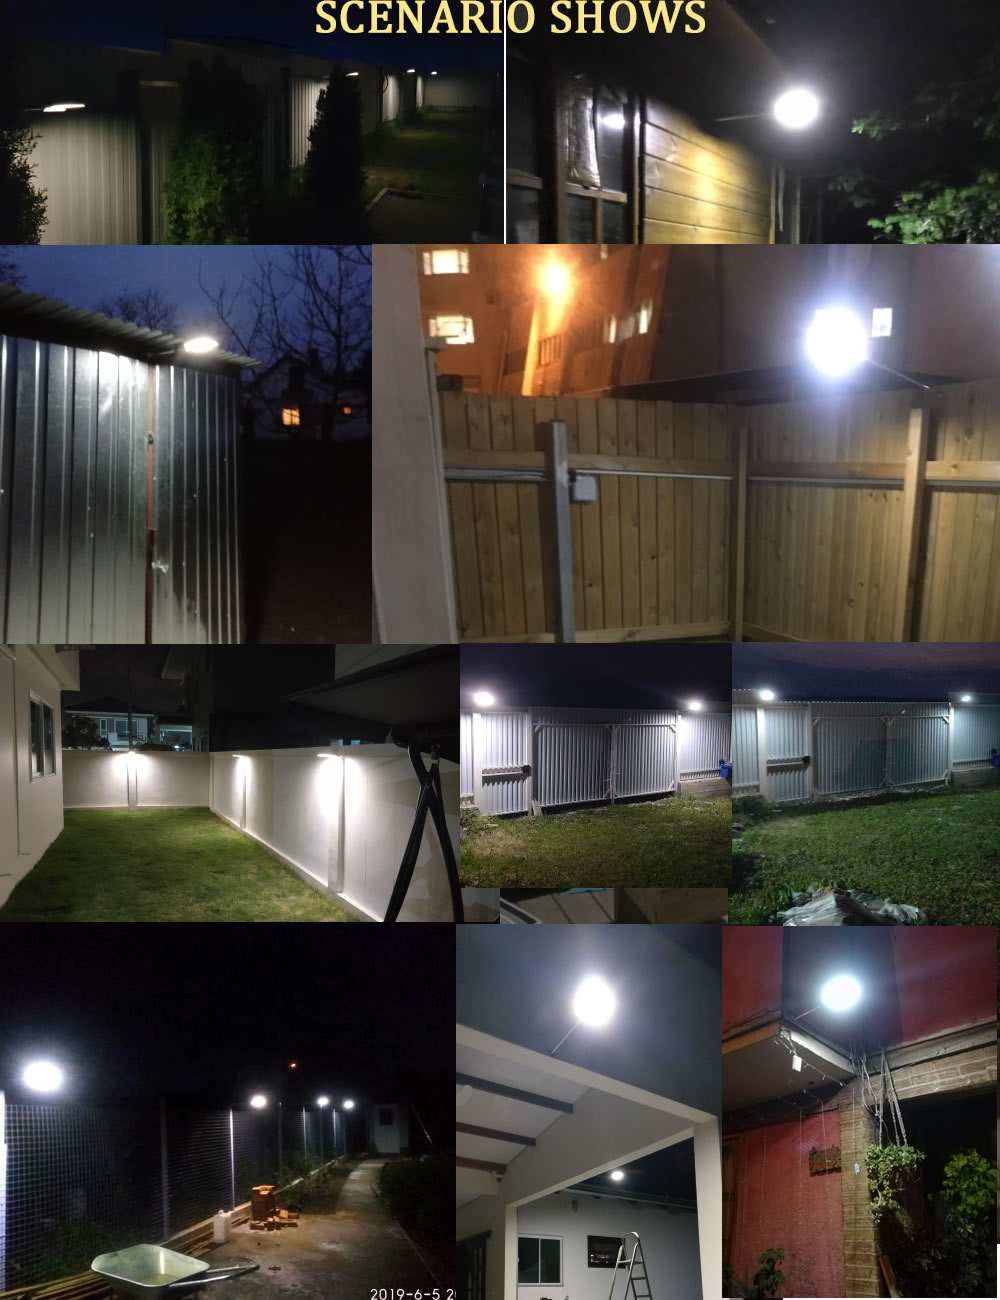 48/36 LED Solar Power 3 modes waterproof PIR Motion Sensor Light Garden Security Lamp Street wall spot flood Light w metal pole